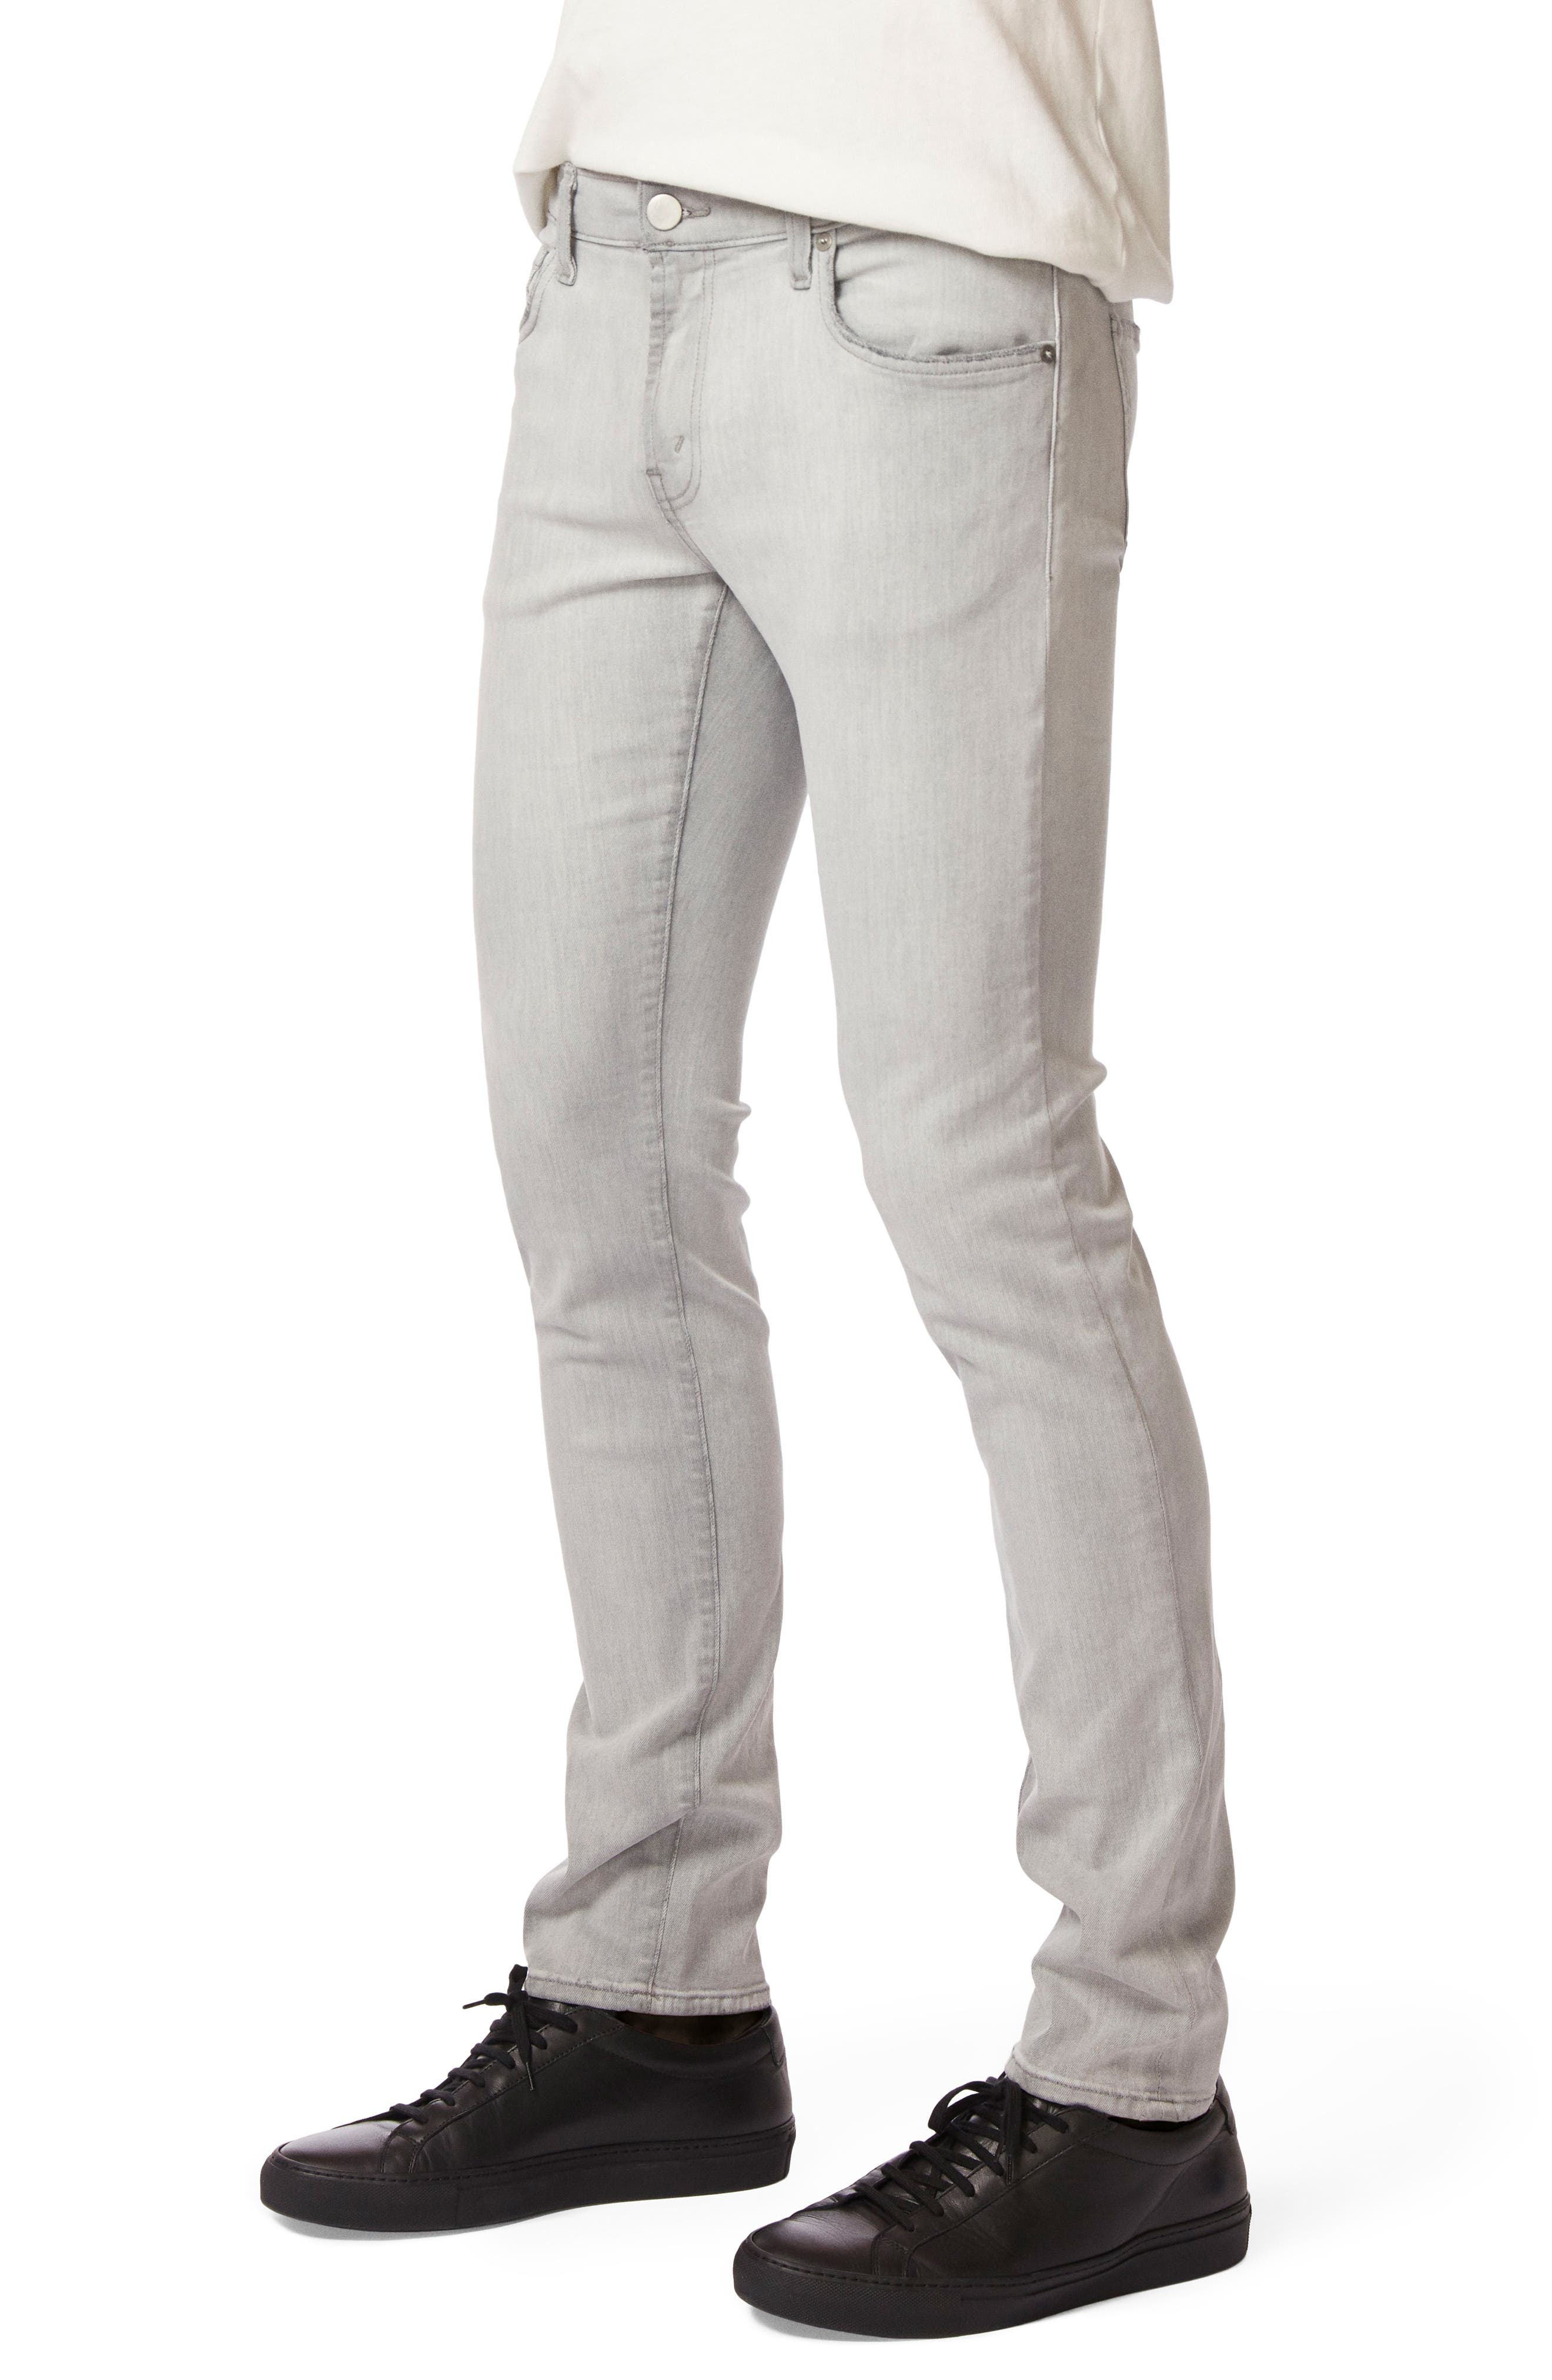 Mick Skinny Fit Jeans,                             Alternate thumbnail 3, color,                             BACKSTRIPE